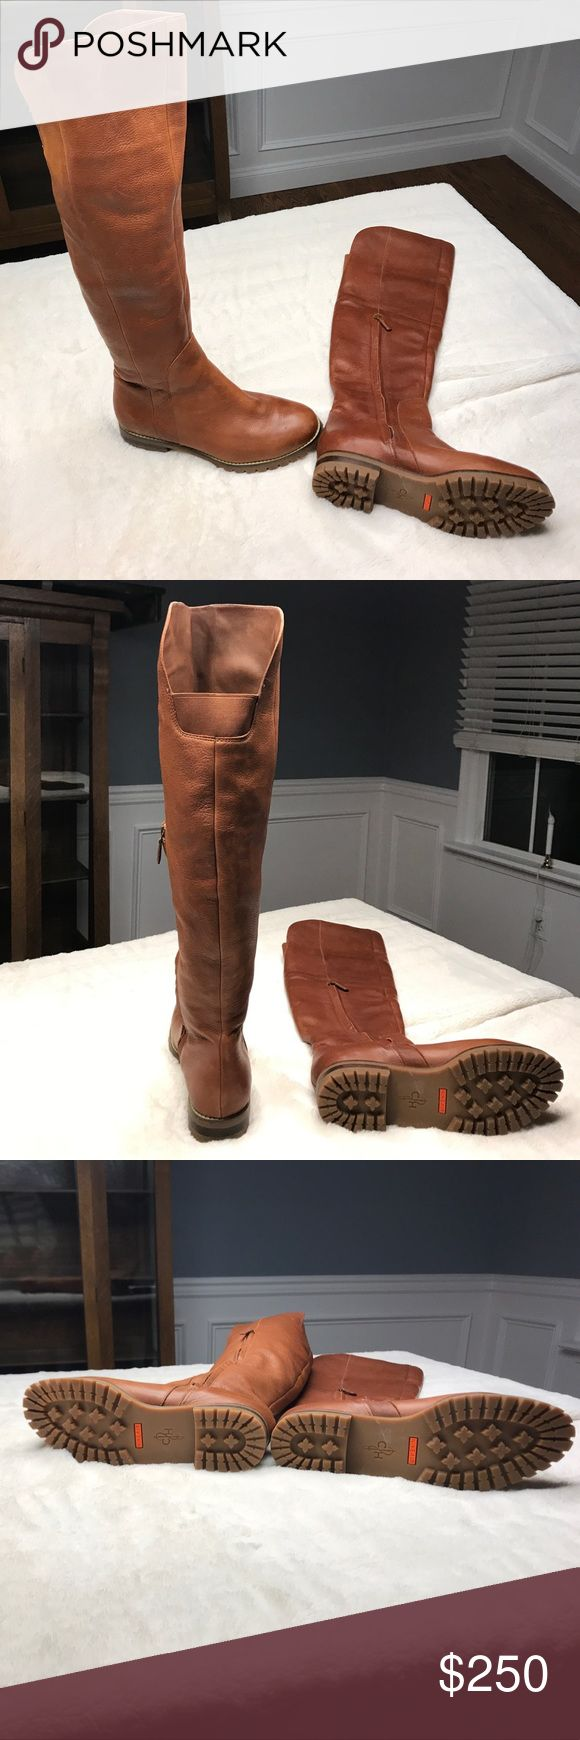 💯%AUTHENTIC COLE HAAN LEATHER BOOTS 💯% AUTHENTIC Brown lamb skin leather over the knee boot with side zip. These boots have the Nike Air rubber lug soles and boots are marked waterproof on the inside. Purchased at the Cole Haan store in NYC. Never worn too tight on my calves. Brand new never worn (see photos of soles ) Comes with dust bag. Size 10 PRICE IS FIRM 😘 Cole Haan Shoes Over the Knee Boots